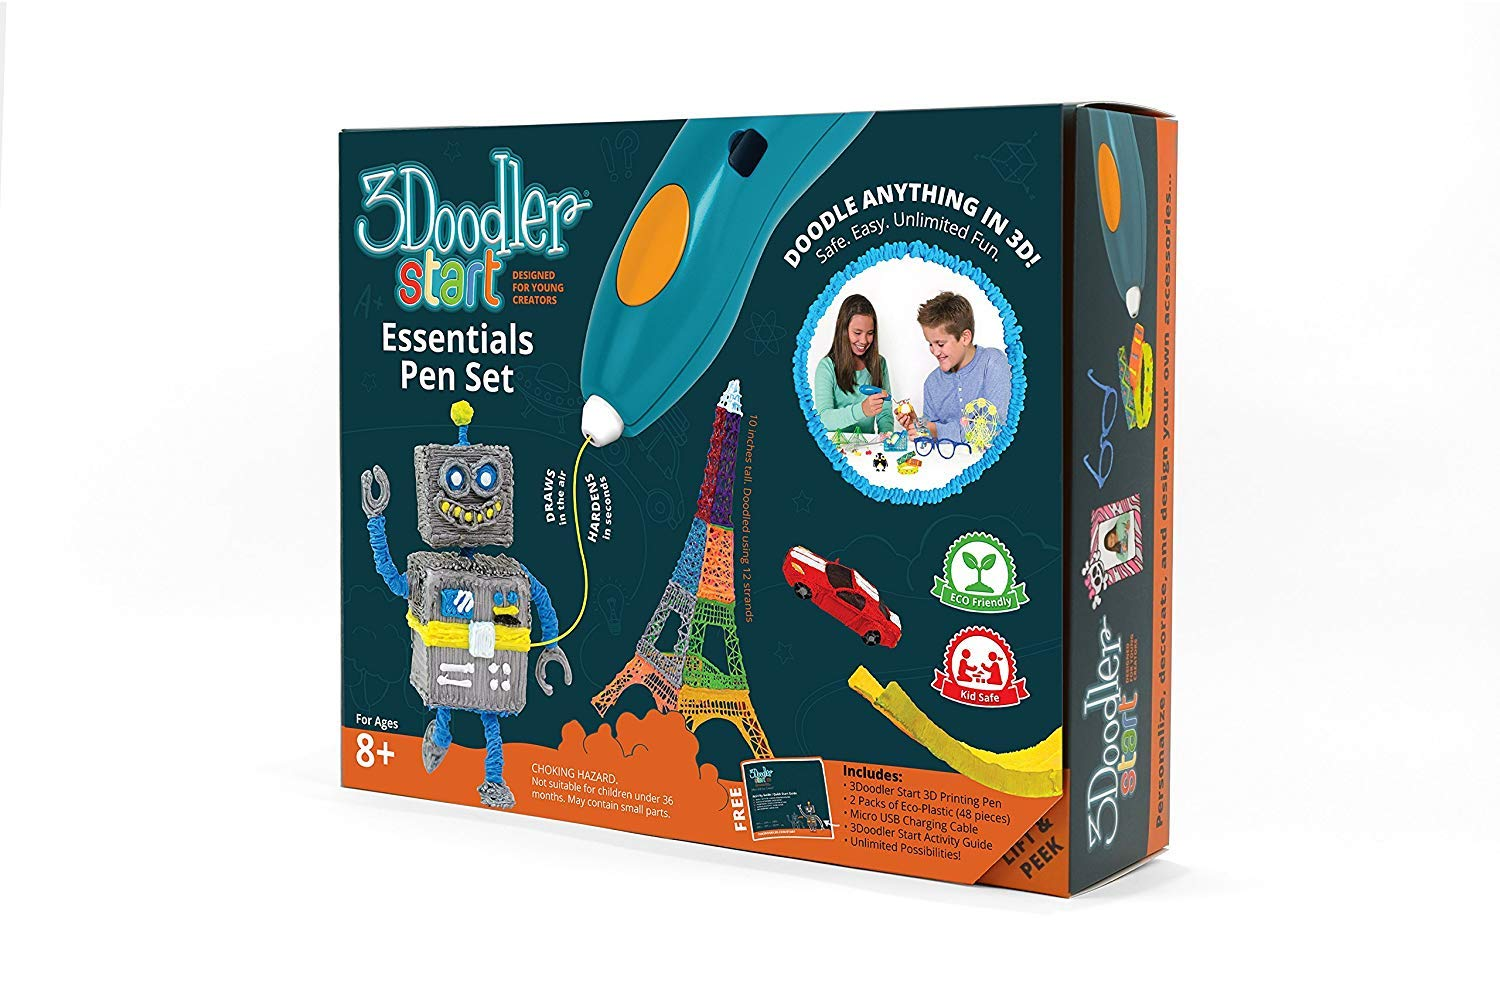 3Doodler Start Essentials 3D Pen Set For Kids with Free Refill Filament - STEM Toy For Boys & Girls, Age 6 & Up - Toy of The Year Award Winner by 3Doodler (Image #4)